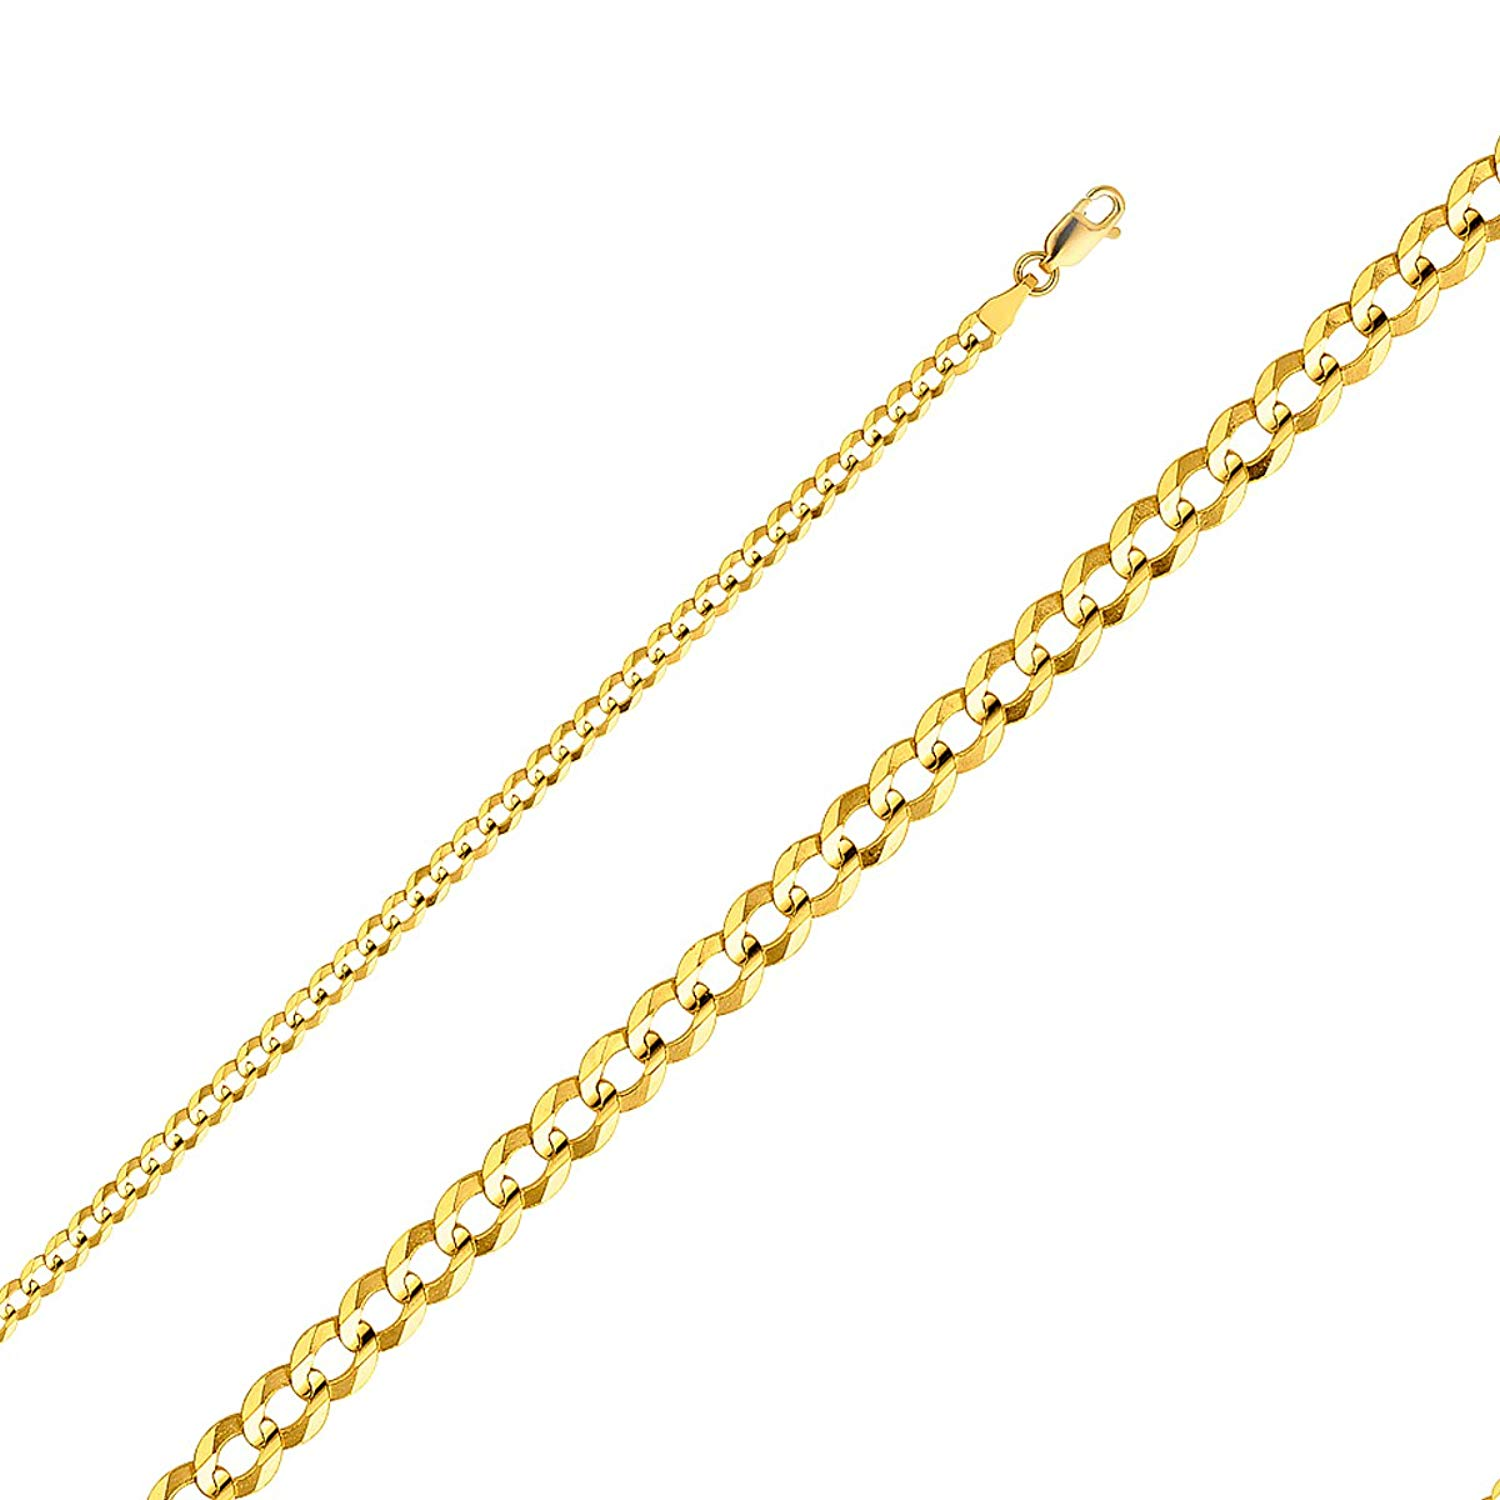 TGDJ 14k Yellow Gold 3.6mm Cuban Chain Curb Open Concave Link Wide Light 7.5/18/20/22/24''